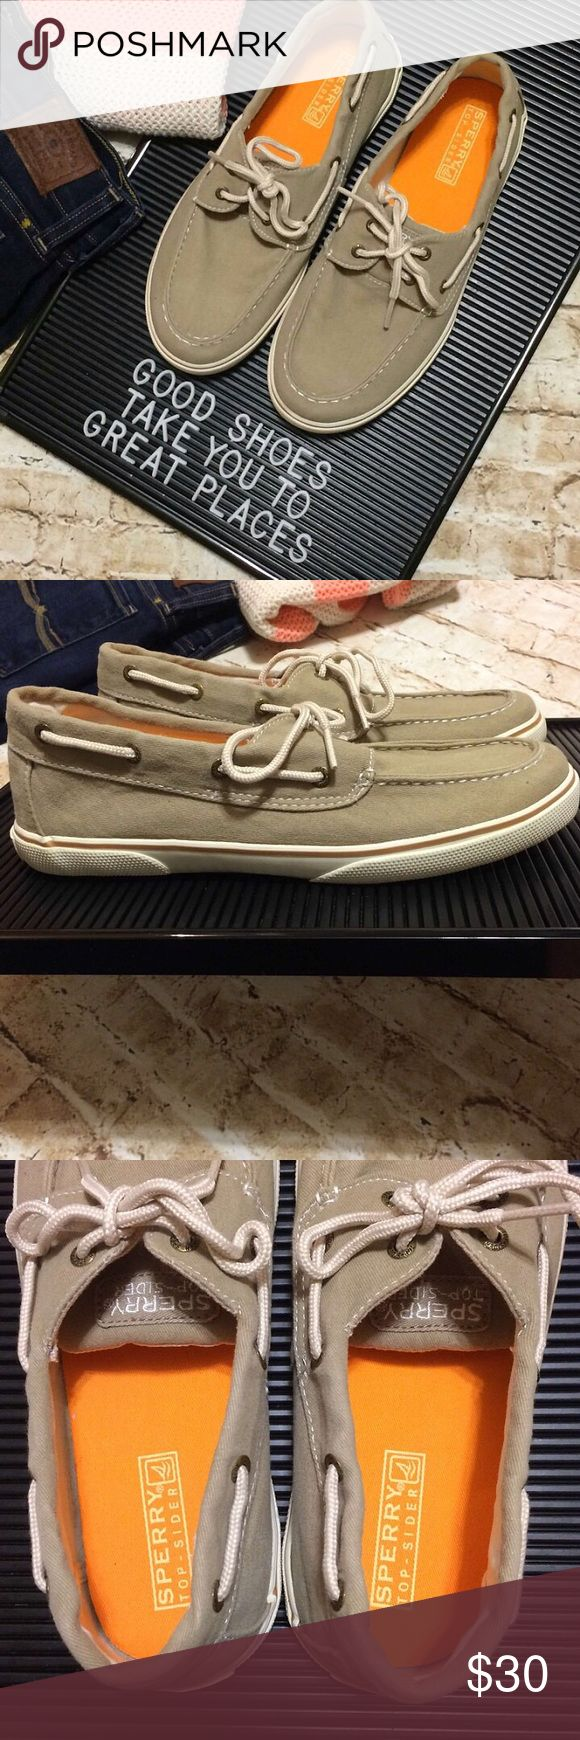 Unisex Sperry Boat Shoes Tan canvas boat shoes by Sperry. Unisex. Laces in good condition. Some minor wear on bottoms as shown but the tops and insides are very clean. Men's Size 6, Women's size 8.5. Perfect for spring and summer. Sperry Top-Sider Shoes Flats & Loafers